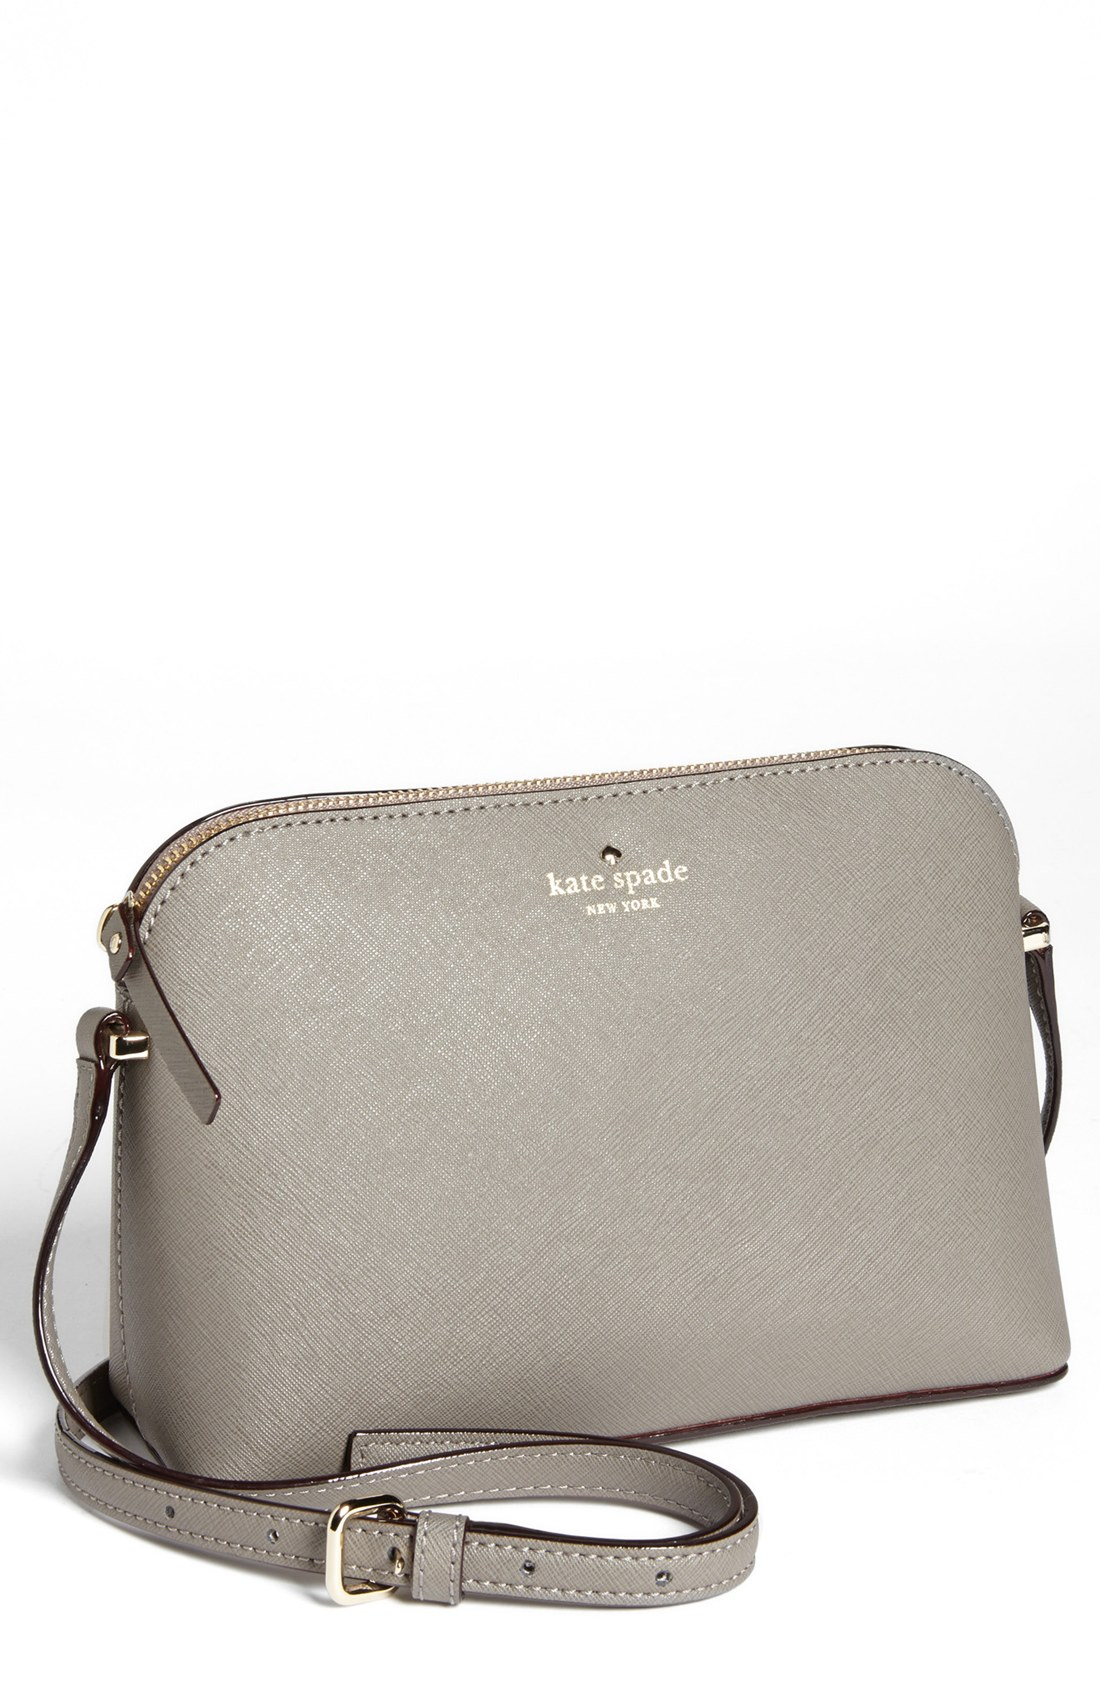 1f72832f3ded Grey Kate Spade Crossbody Bags | Stanford Center for Opportunity ...